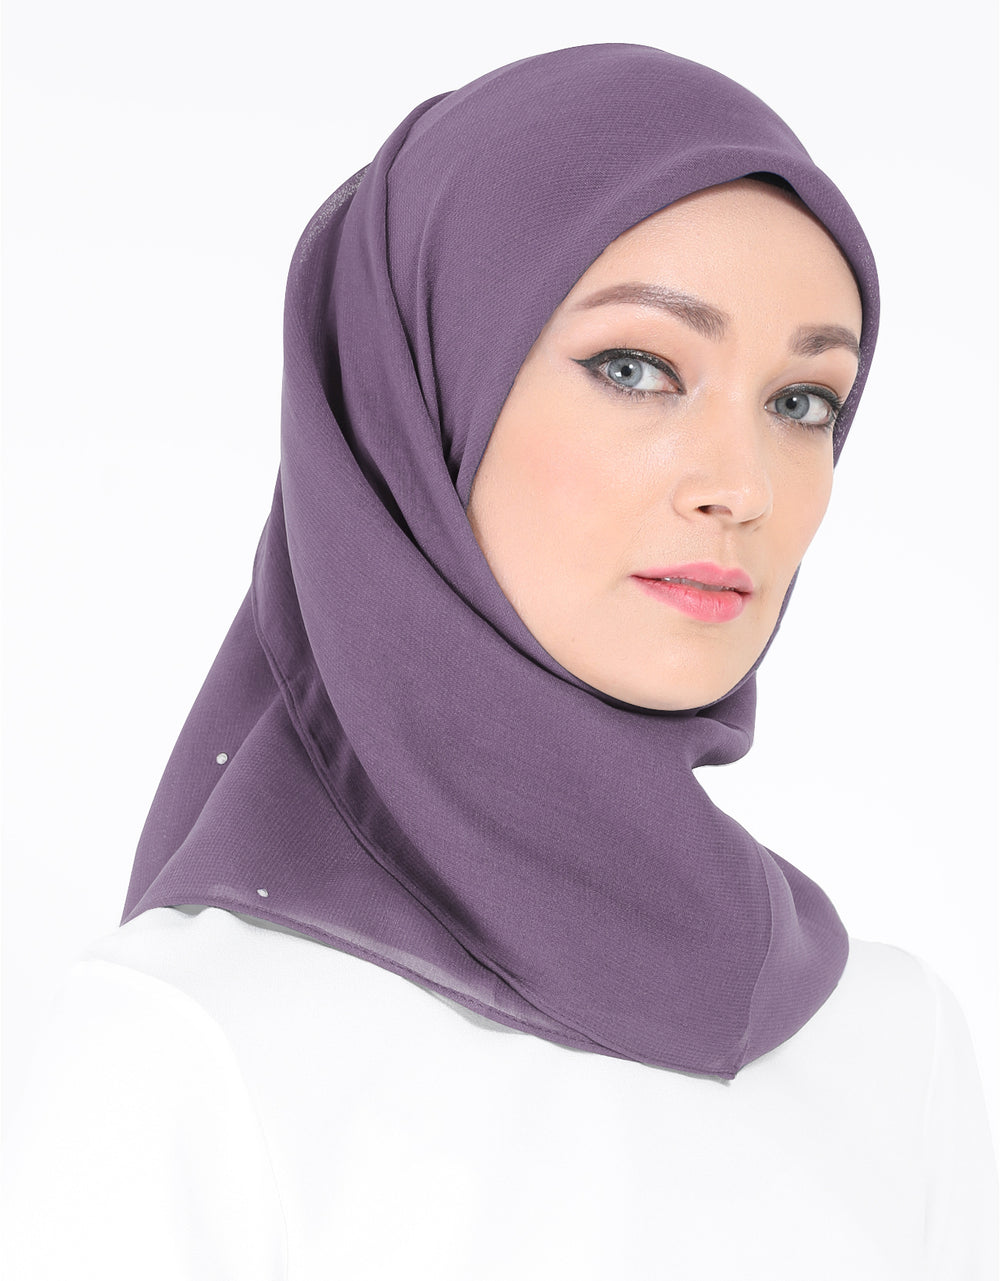 Chiffon Square Bawal With Stone Col. 77 (Dusty Plum)